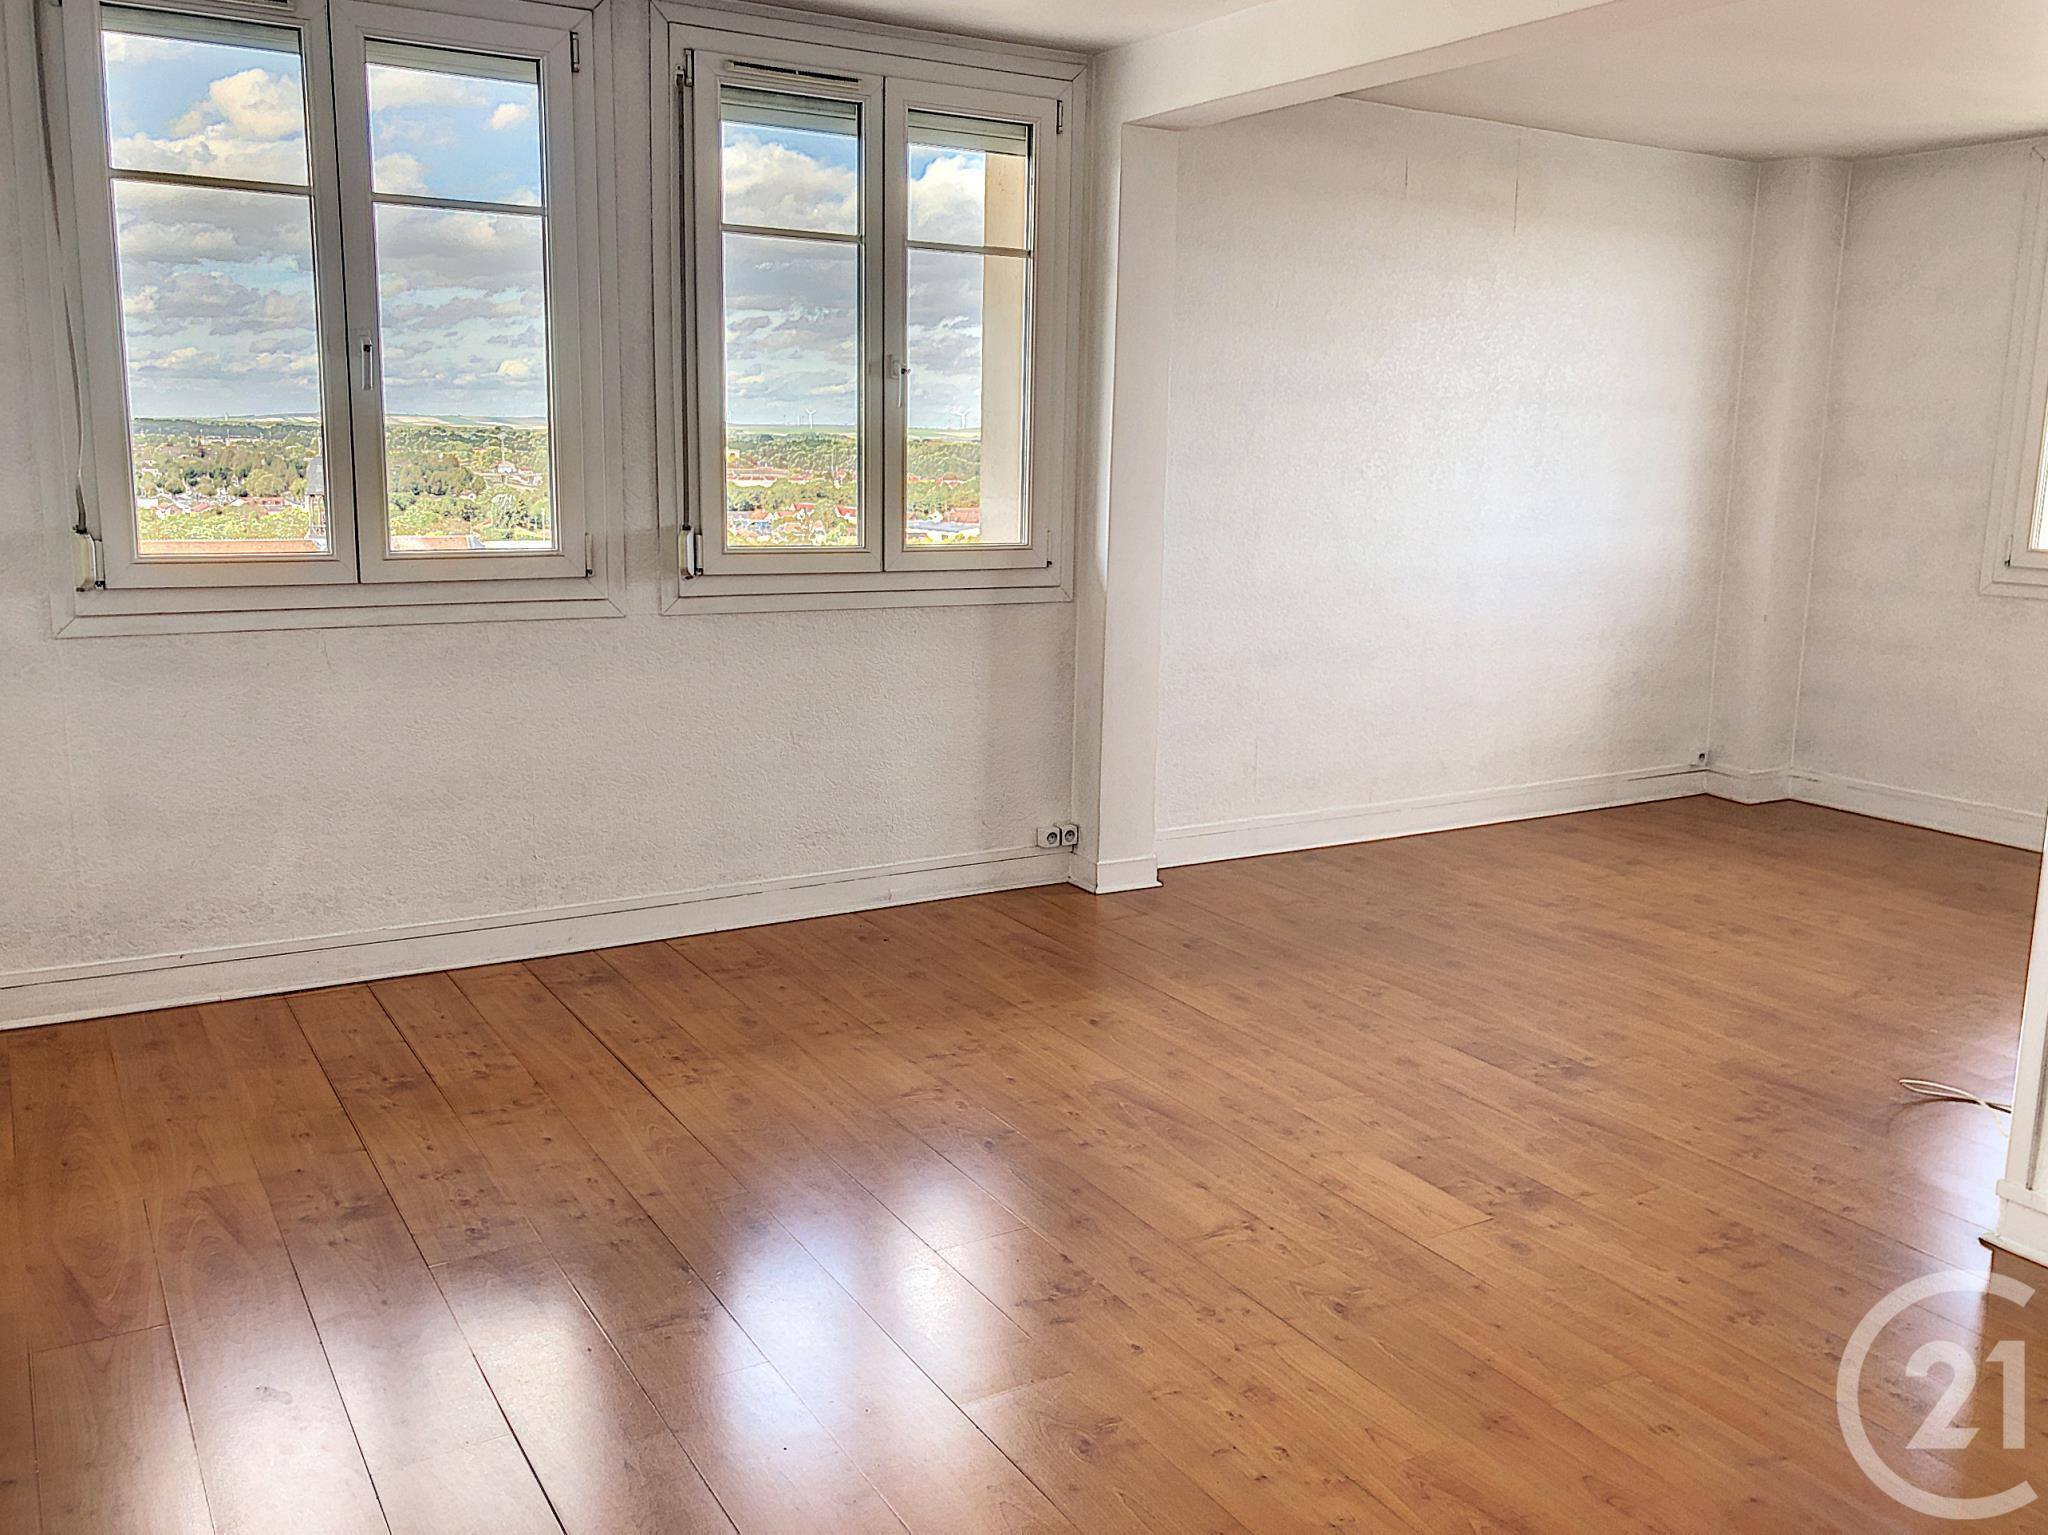 Appartement F5 à louer - 4 pièces - 82 m2 - TROYES - 10 - CHAMPAGNE-ARDENNE